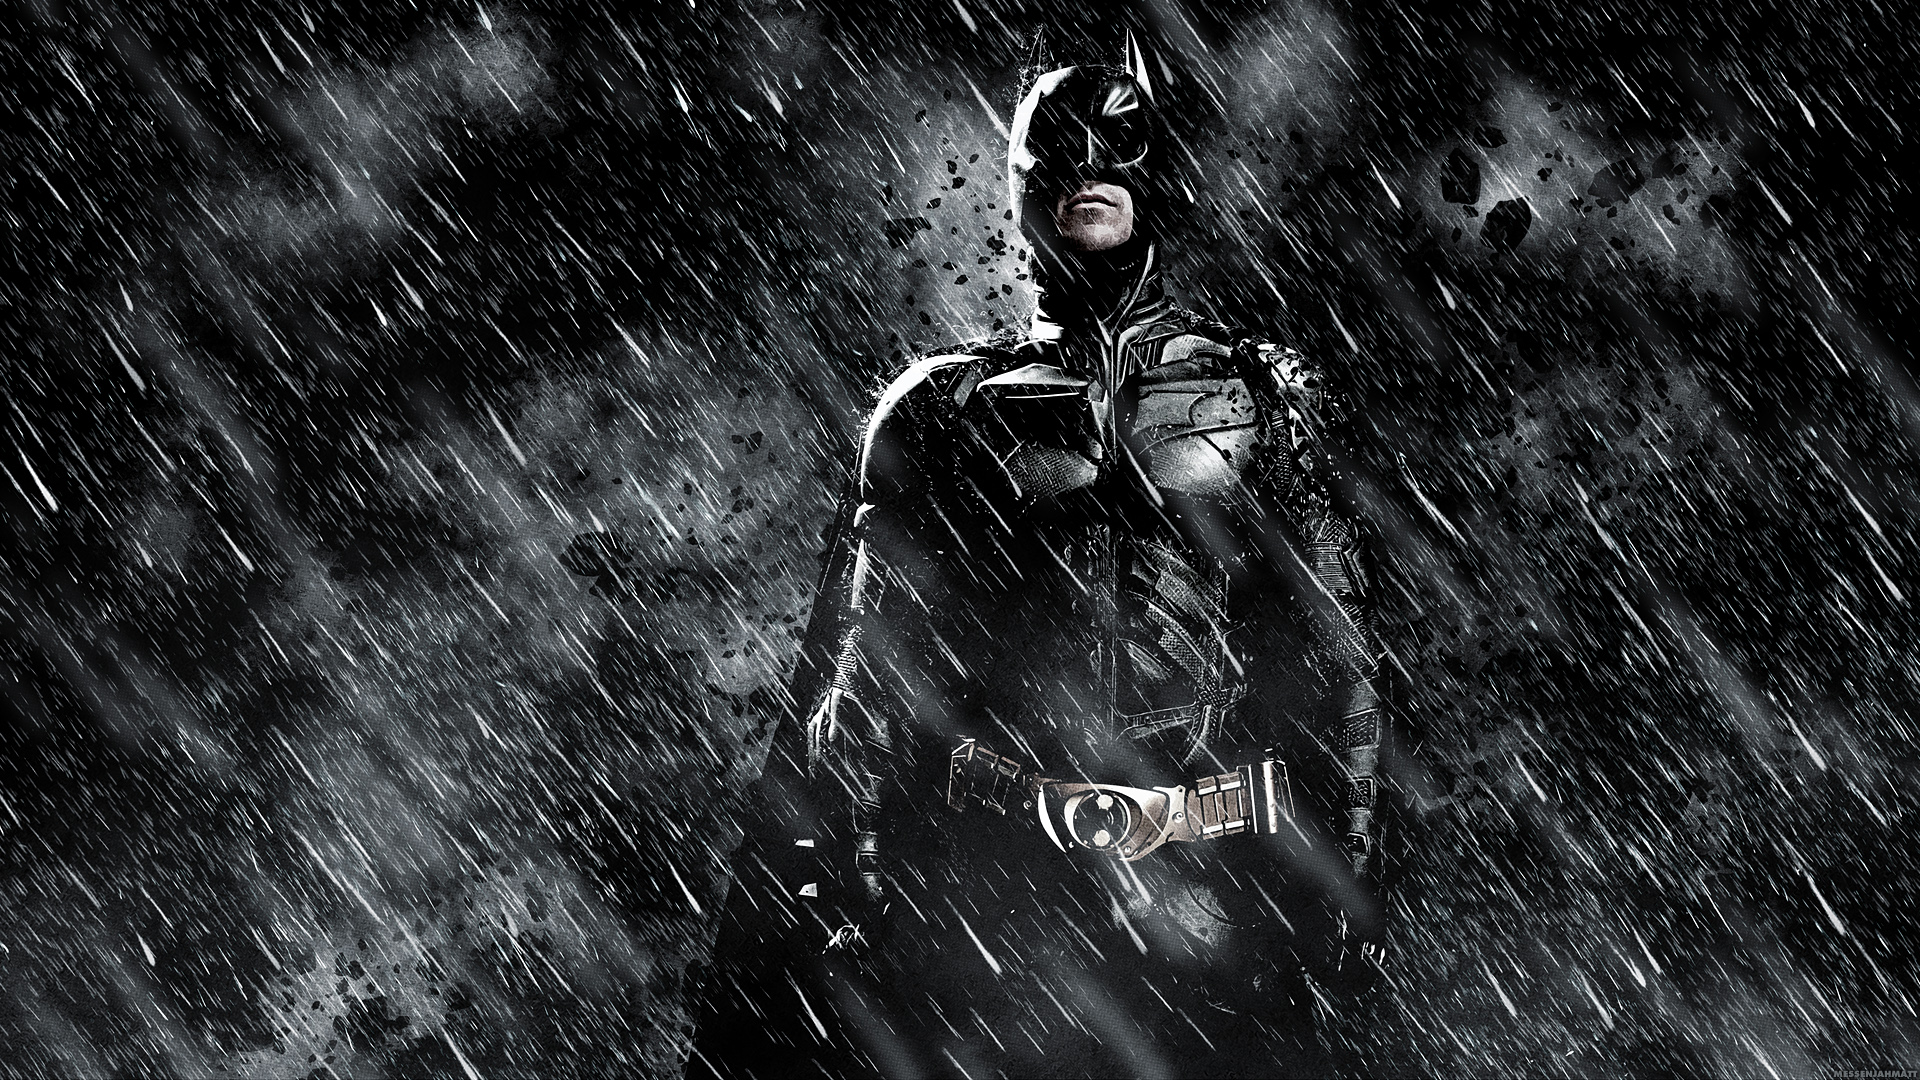 Batman In Dark Knight Rises - Top 10 HD Batman Movie Desktop Wallpapers